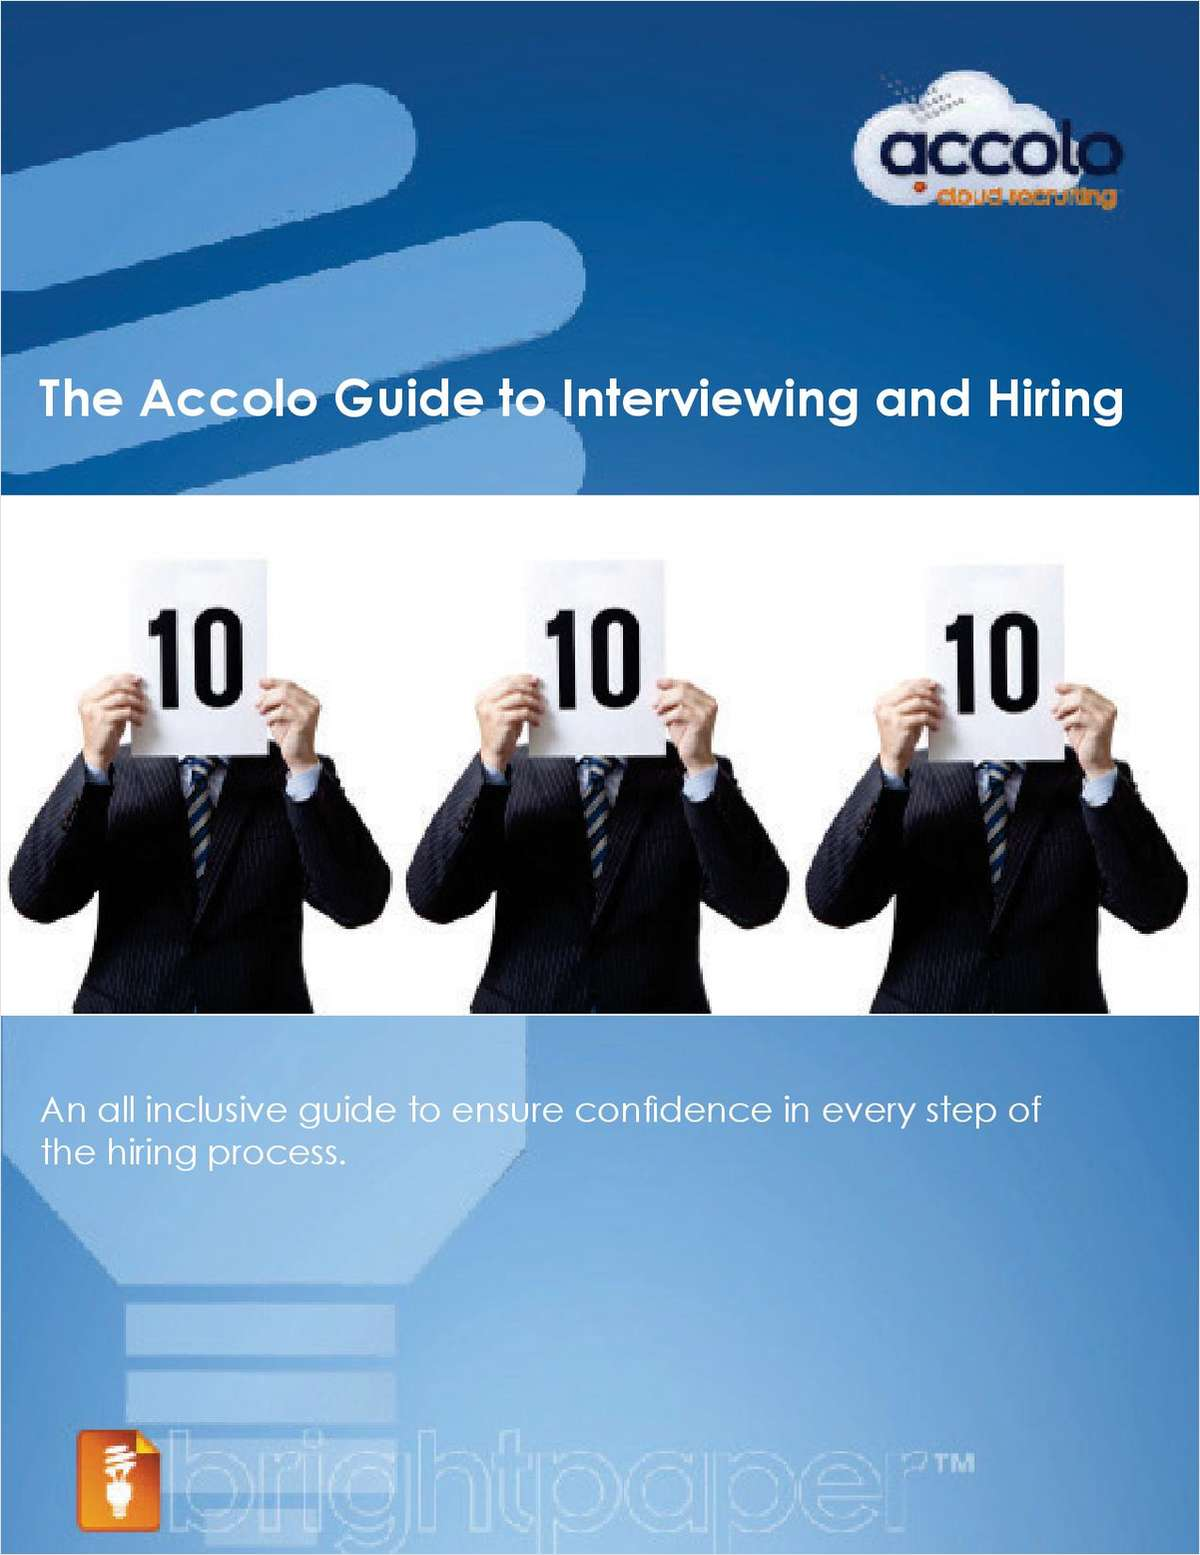 The Accolo Guide to Interviewing and Hiring